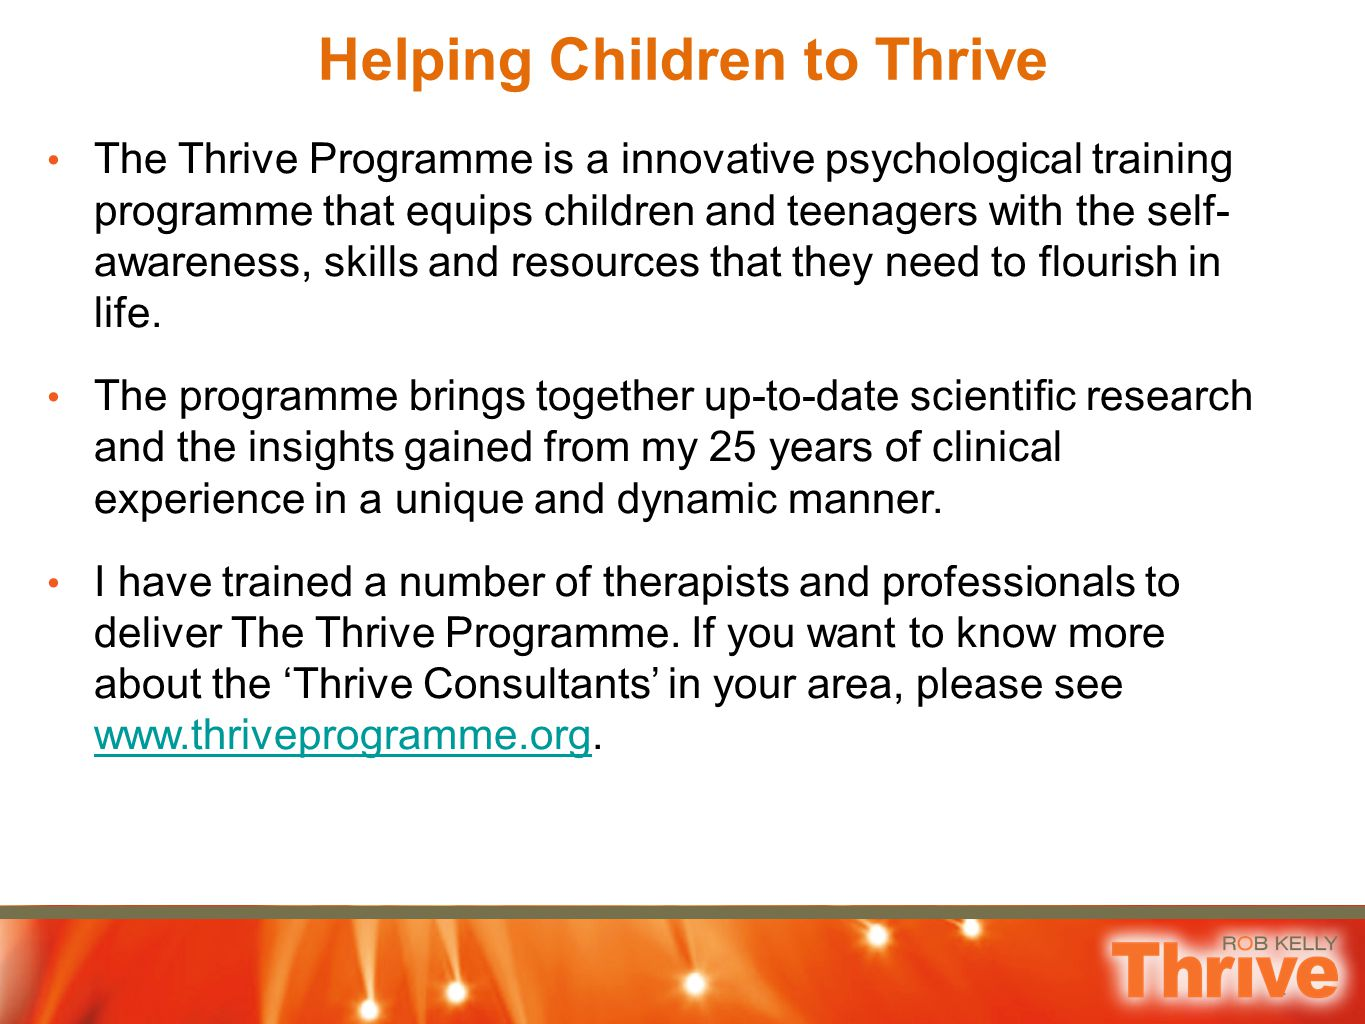 2 The Thrive Programme is a innovative psychological training programme that equips children and teenagers with the self- awareness, skills and resources that they need to flourish in life.